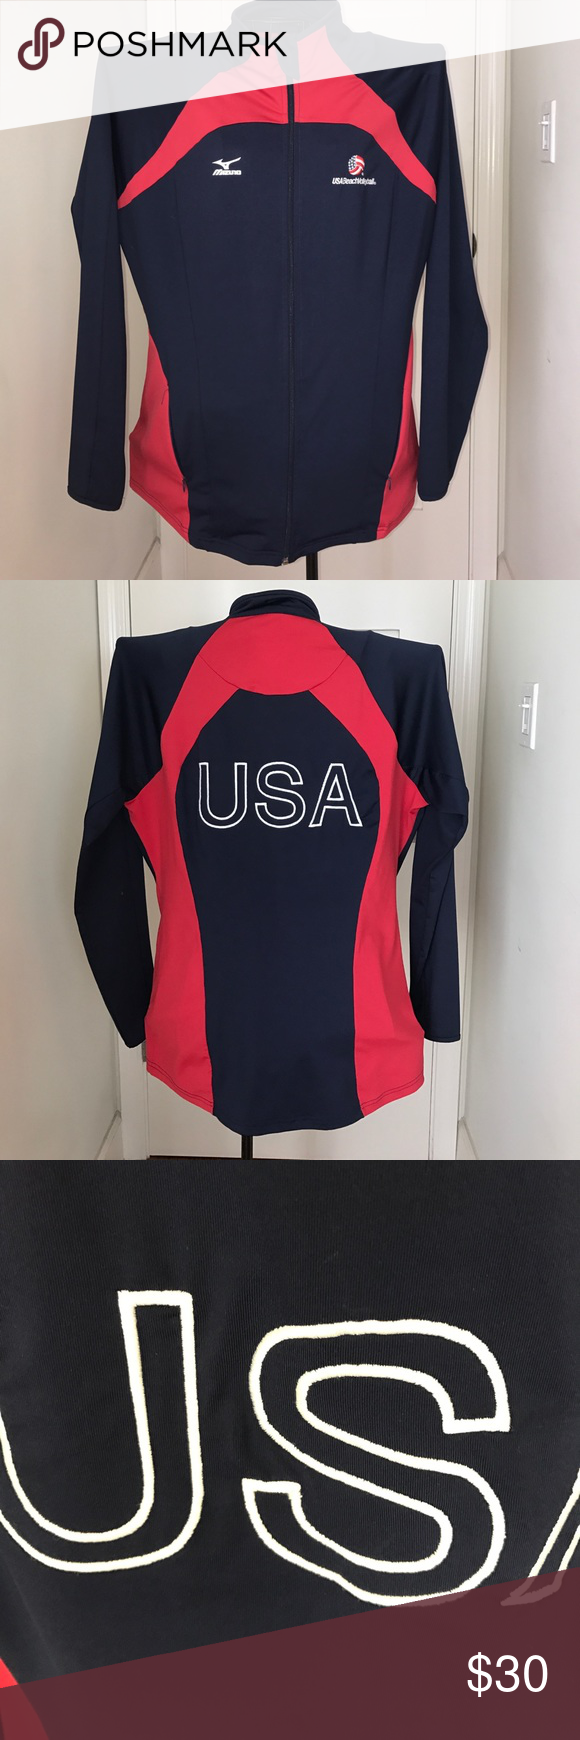 Sale Usa Beachvolleyball Mizuno Jacket Xl Team Jackets Jackets Clothes Design